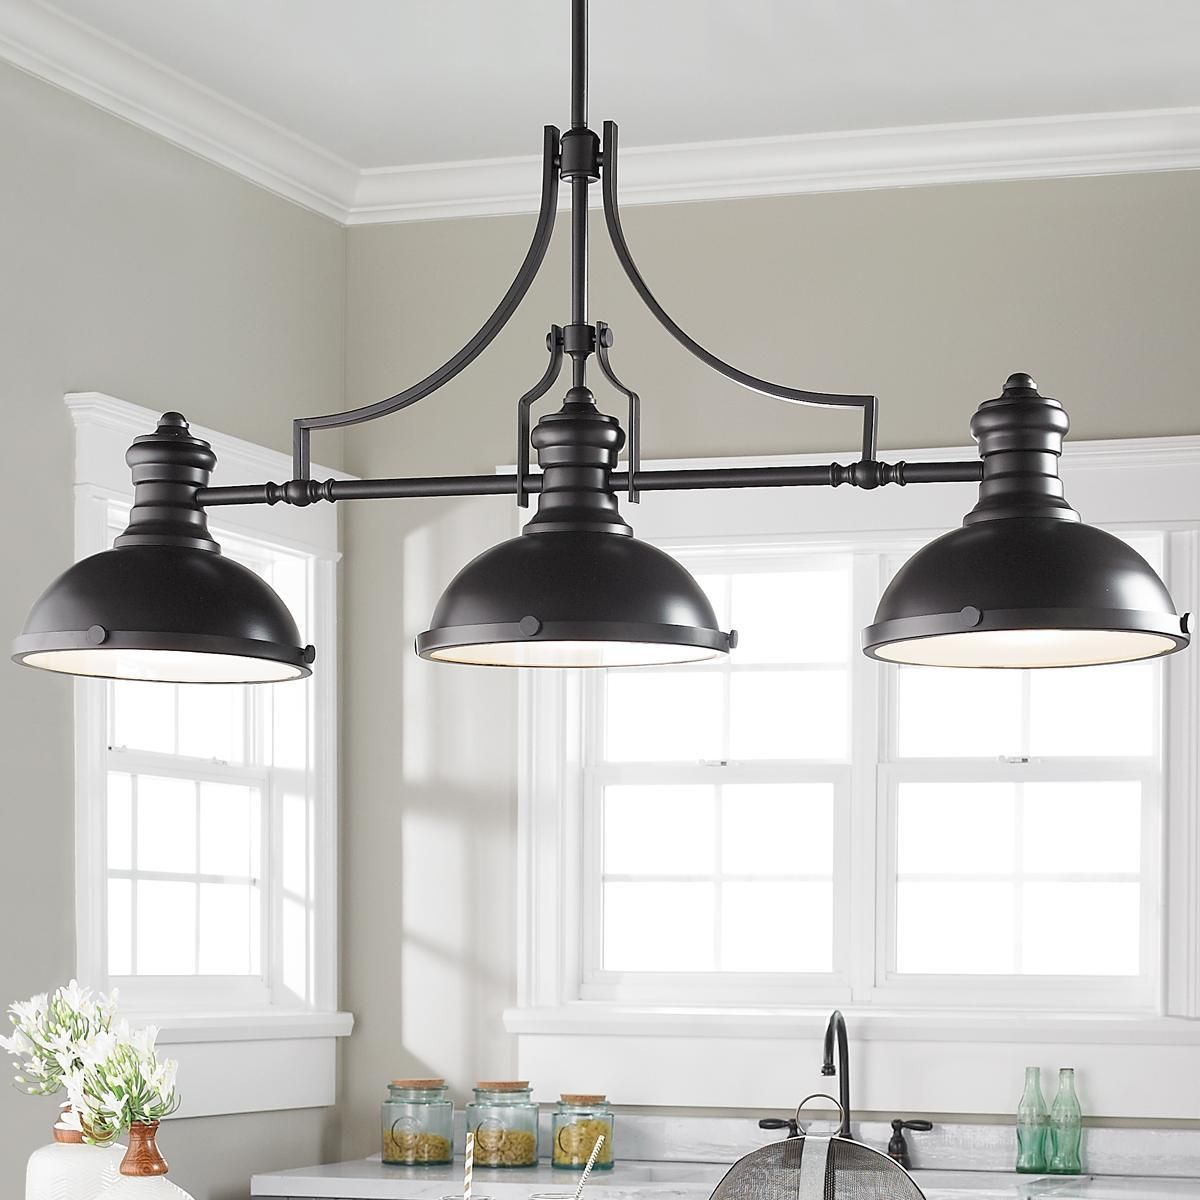 Craftsman Period Island Chandelier - 3 Light | Kitchen intended for Martinique 3-Light Kitchen Island Dome Pendants (Image 9 of 30)